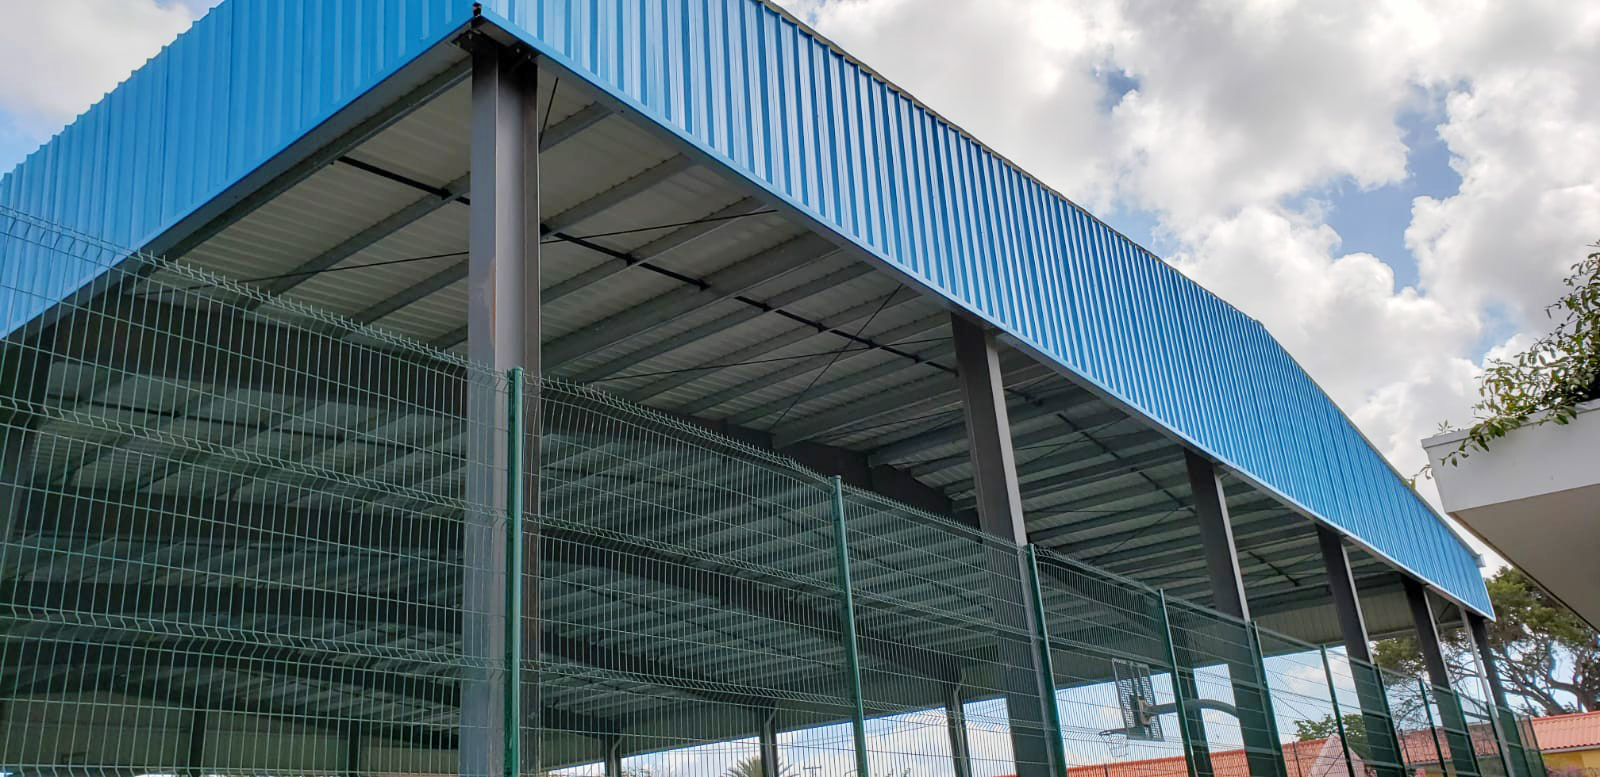 steel sporting facilities roof